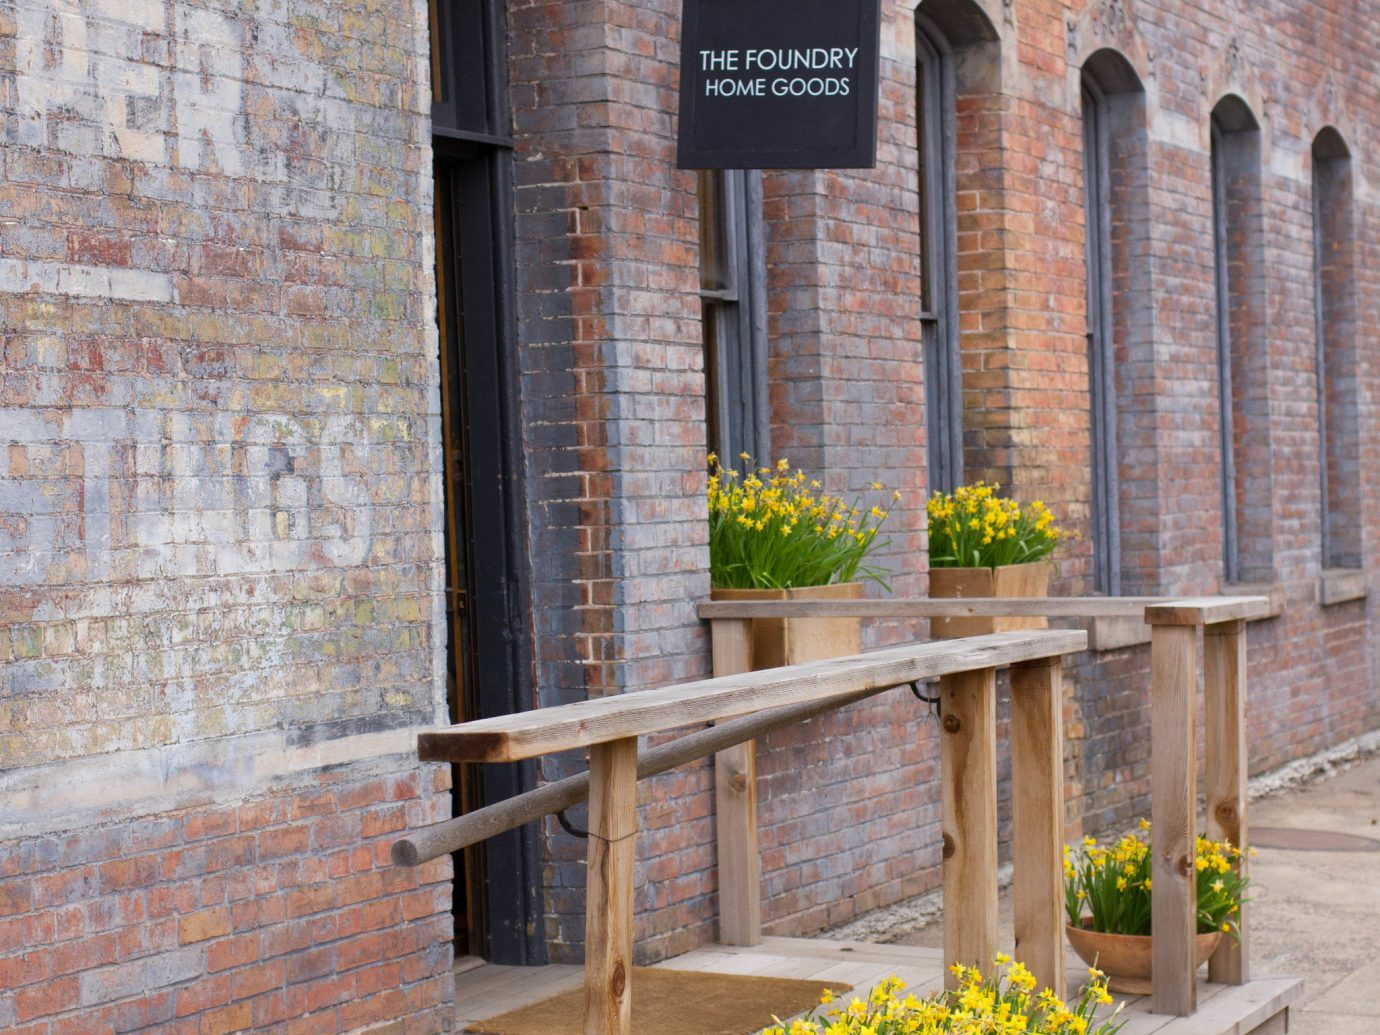 Trip Ideas building outdoor ground brick wall Town Architecture facade stone Courtyard